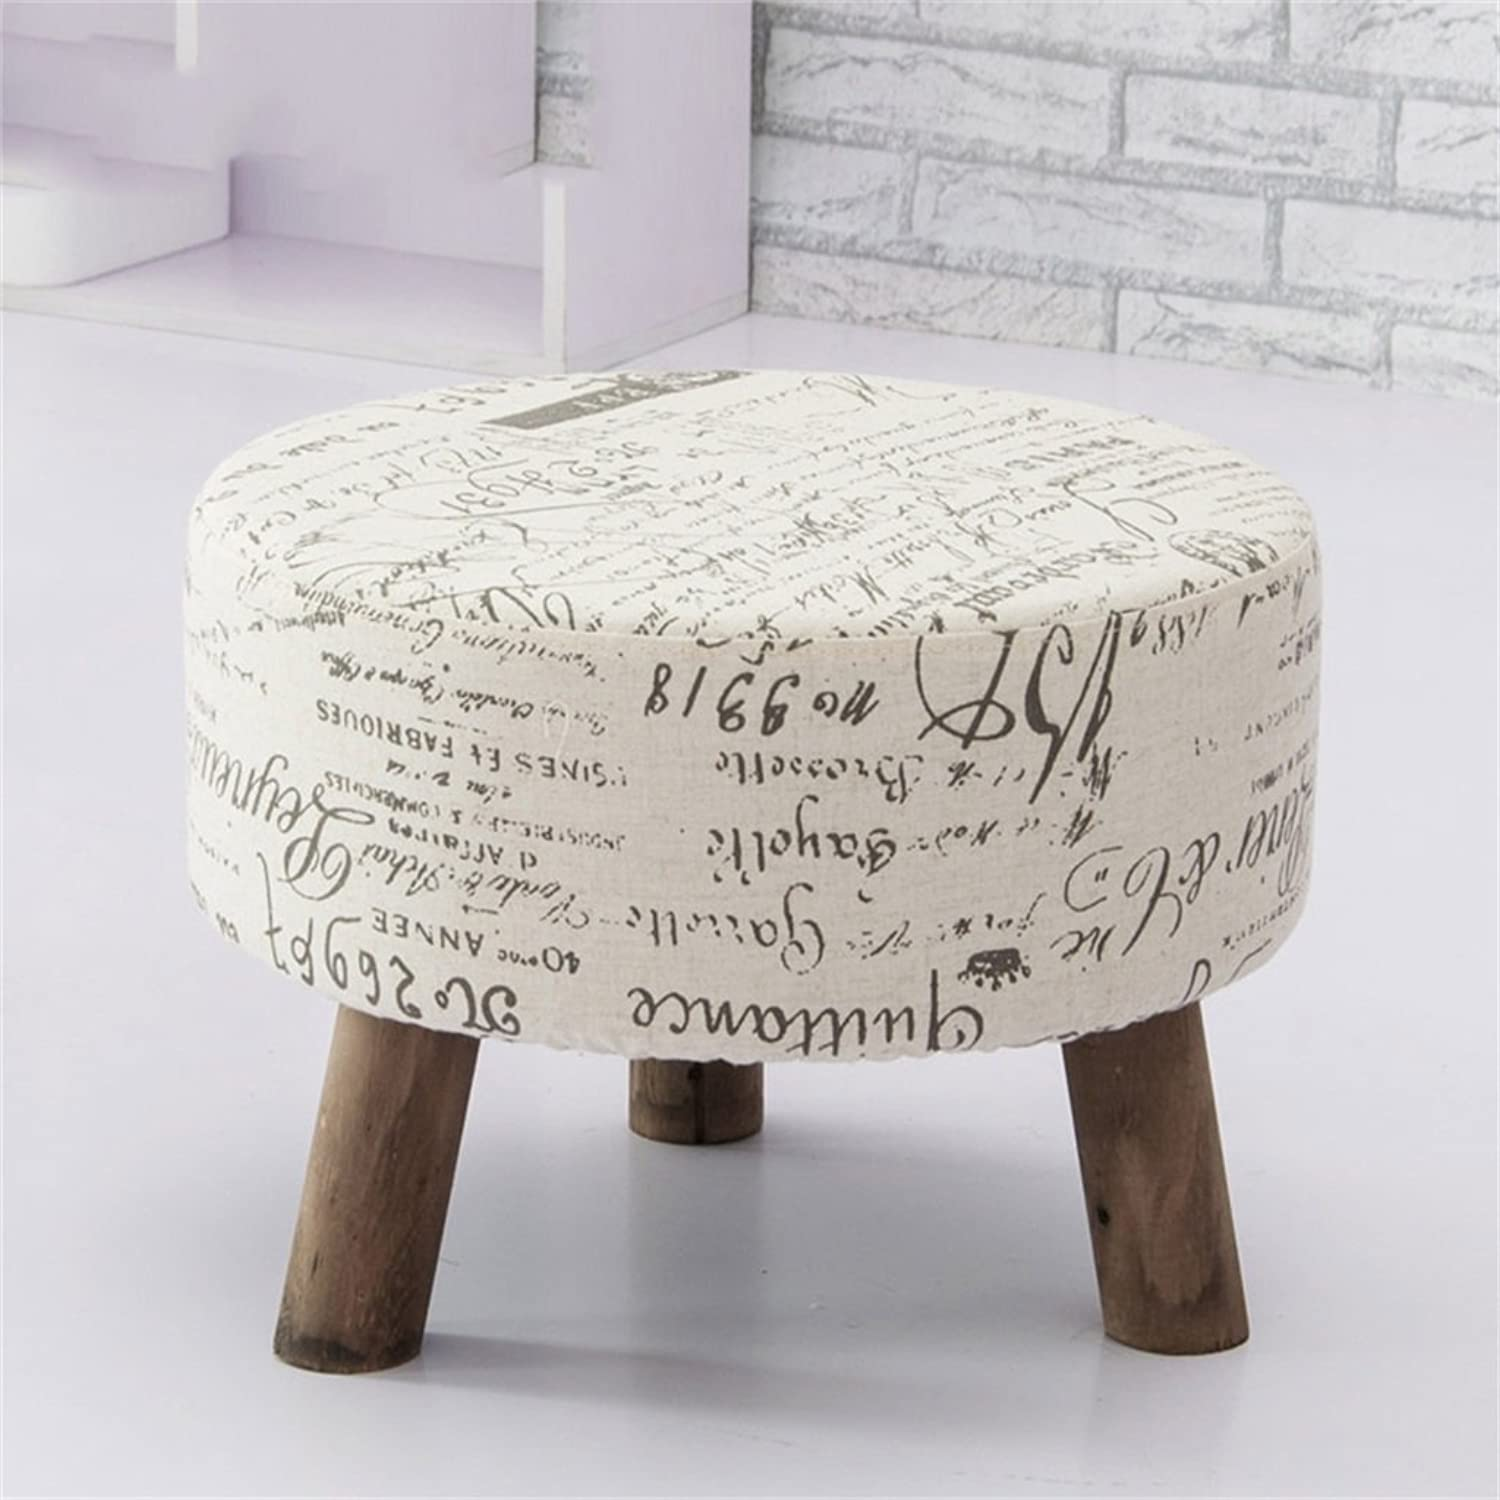 DQMSB shoes Bench - Fabric Sofa Bench, Low Stool, Stool, Fashion Footstool (color     11)